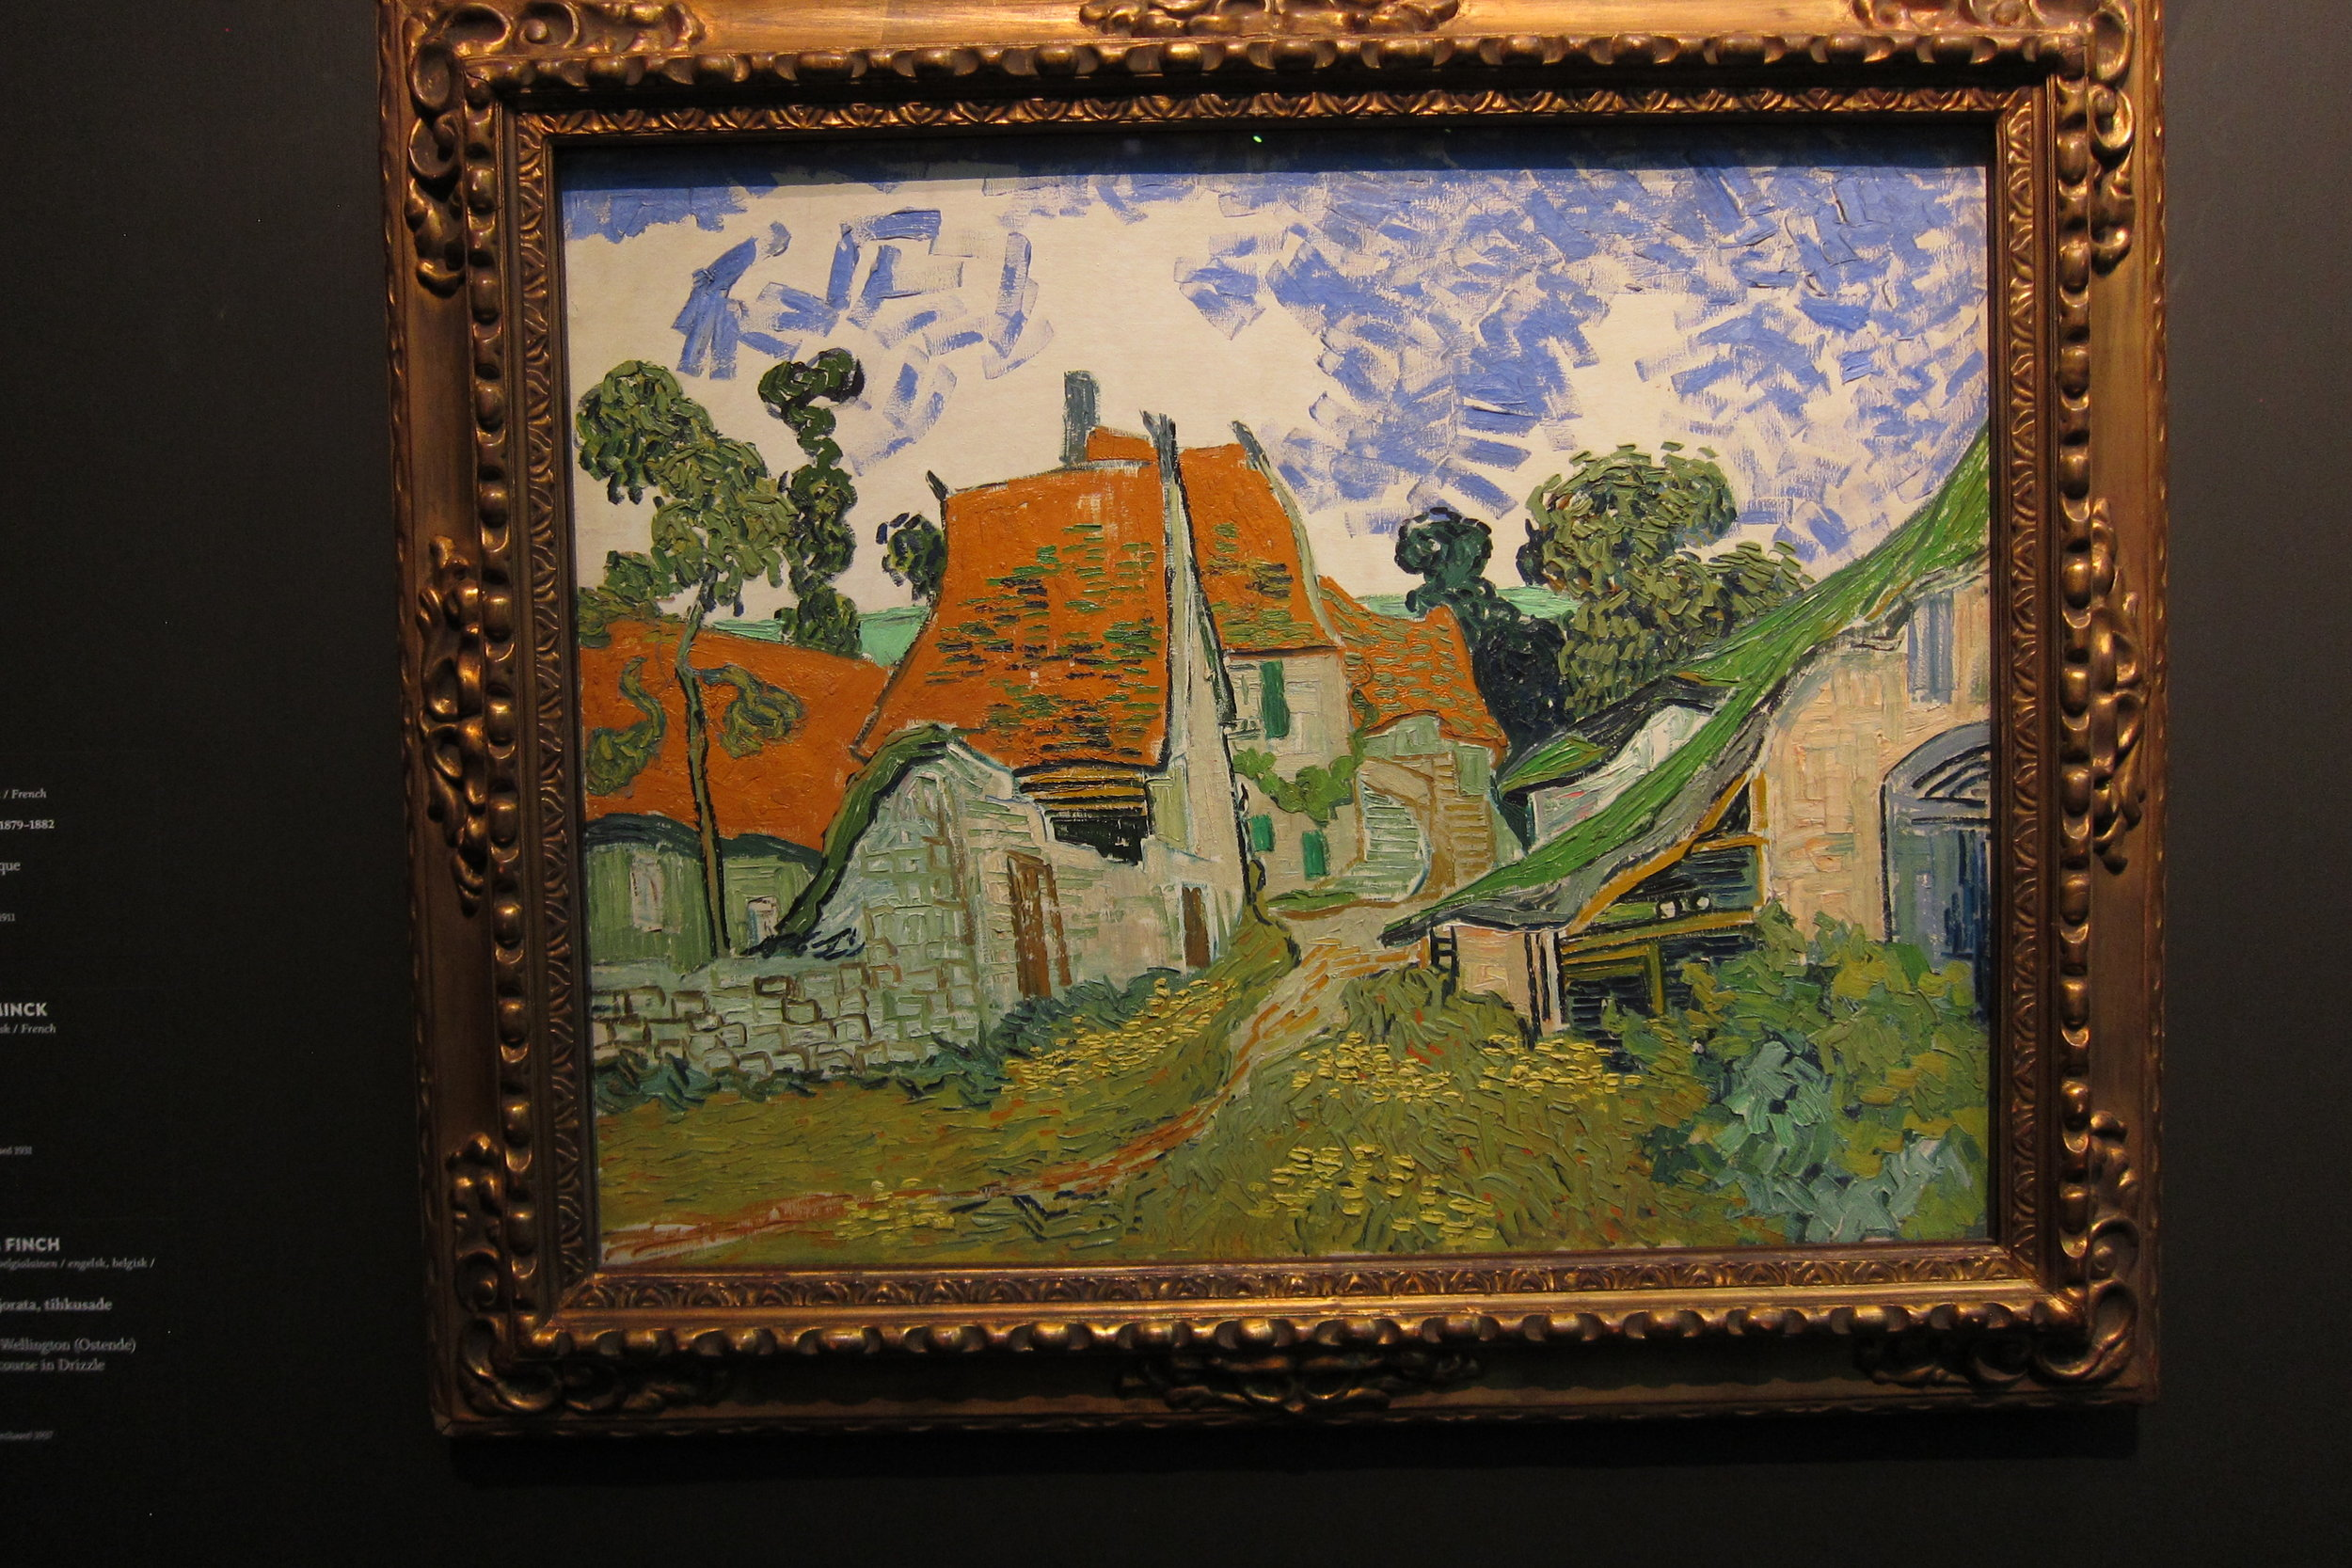 Van Gough at the Ateneum Museum, Helsinki, 5/21/19